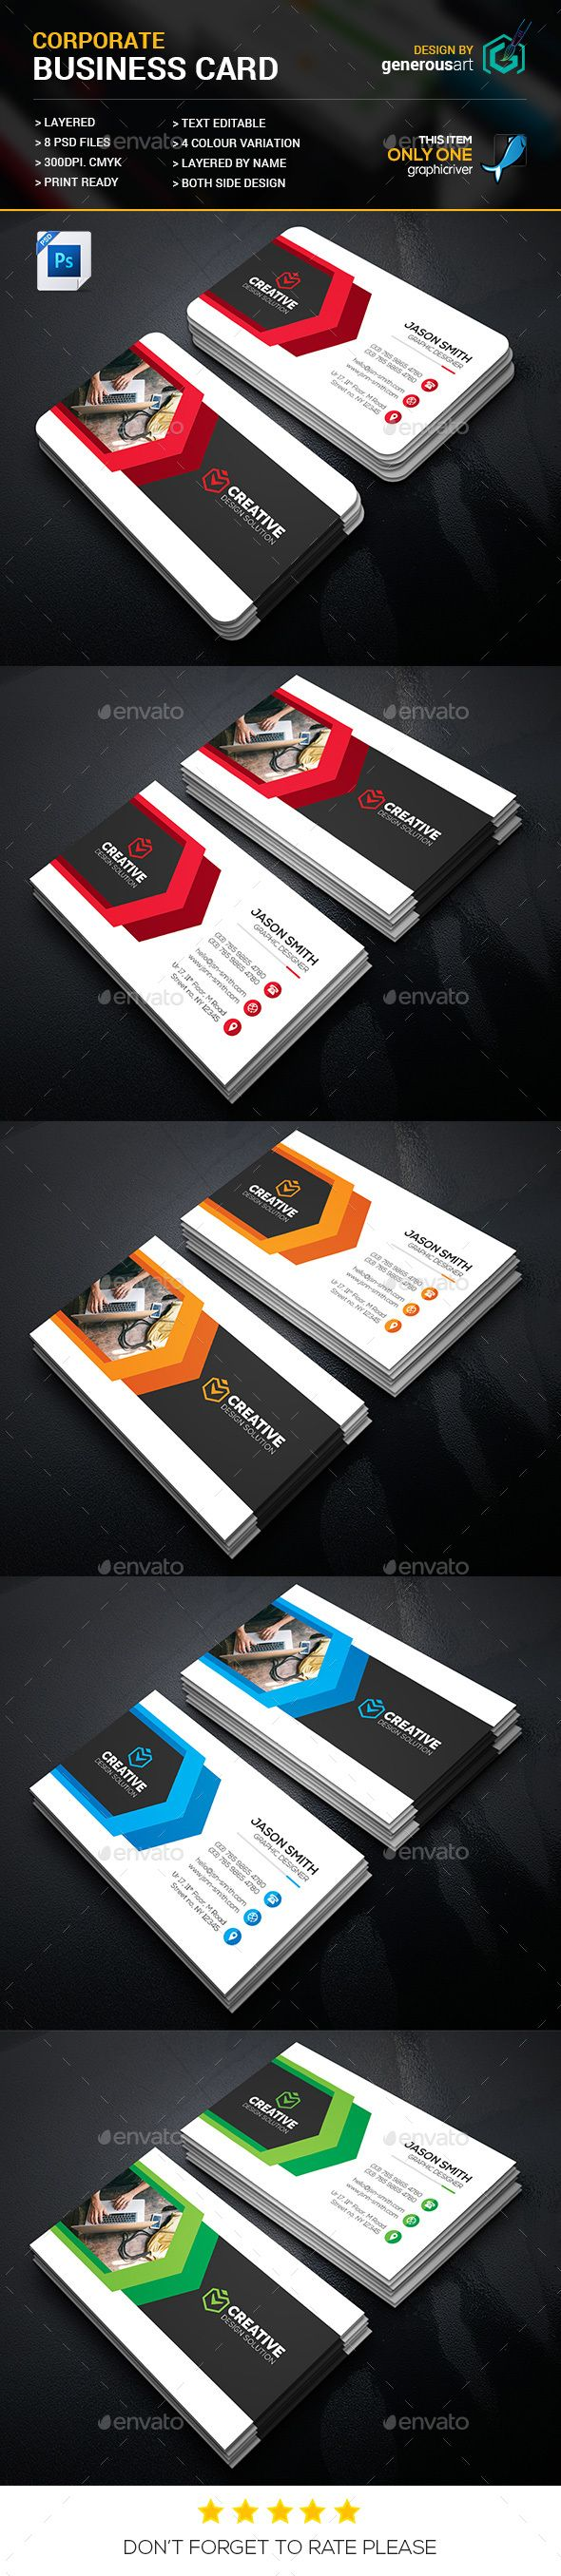 Corporate business card template psd download here https corporate business card template psd download here httpsgraphicriver reheart Choice Image